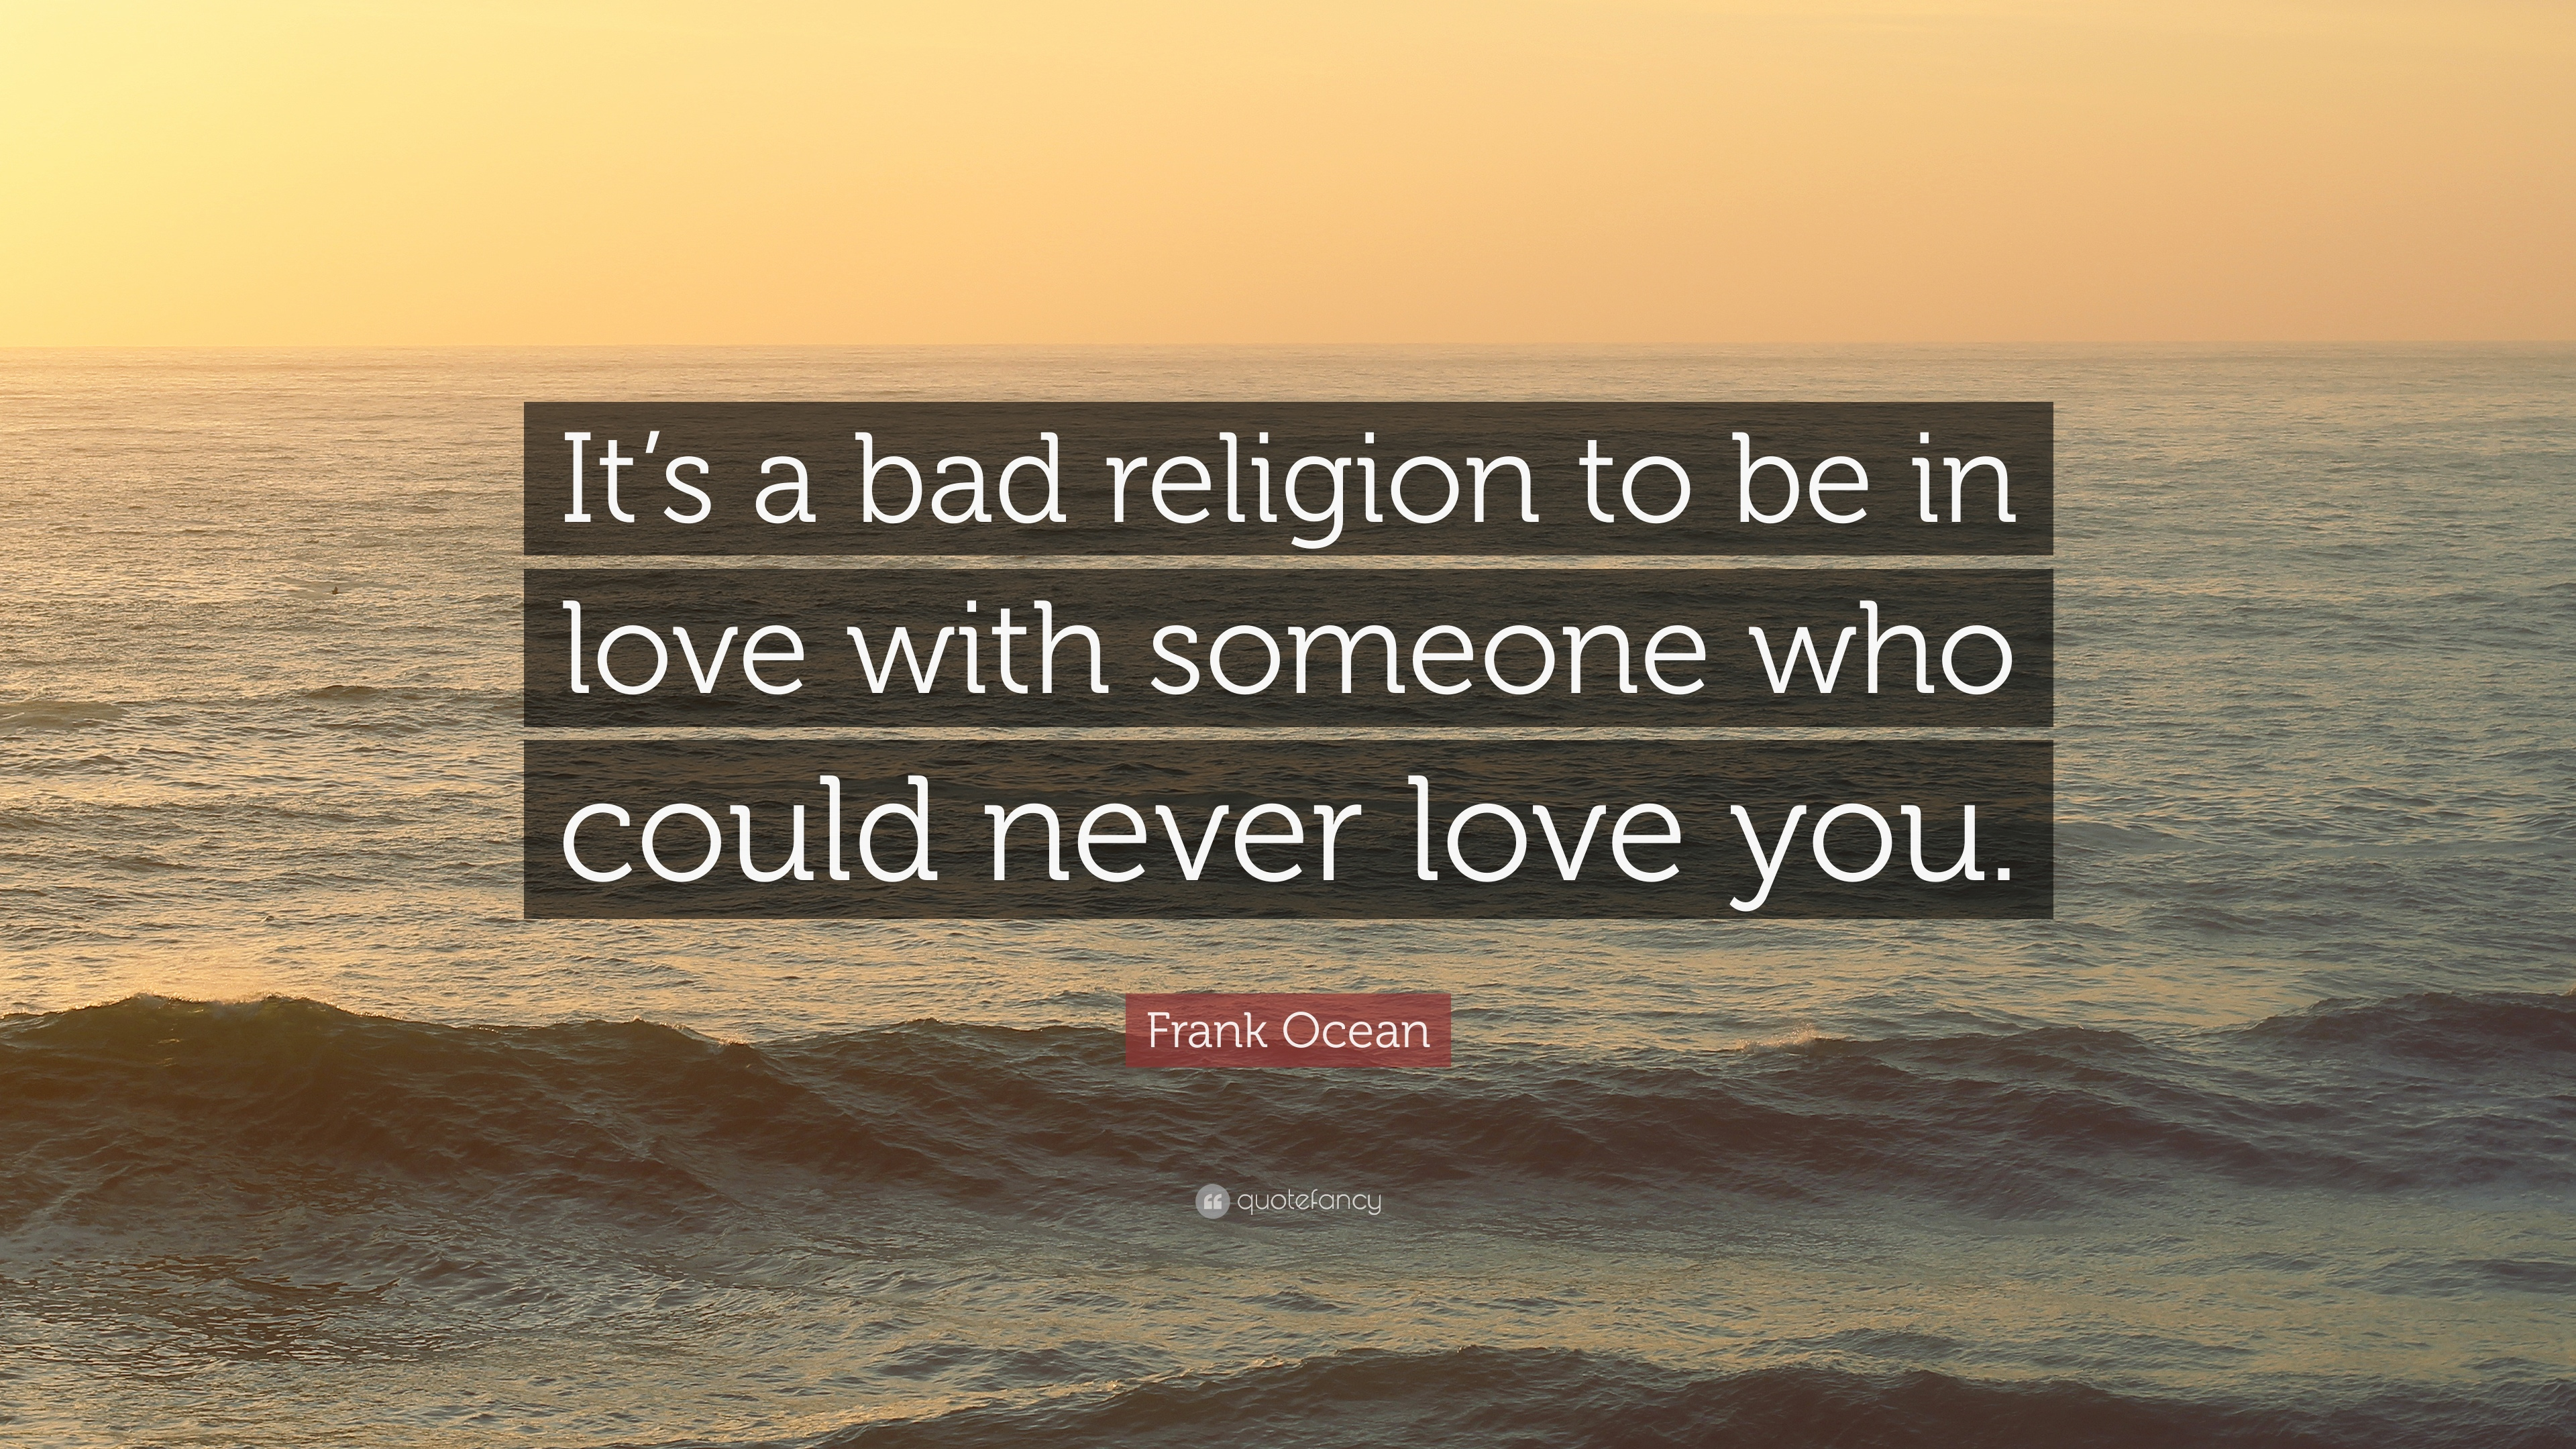 Frank Ocean Quote: U201cItu0027s A Bad Religion To Be In Love With Someone Who